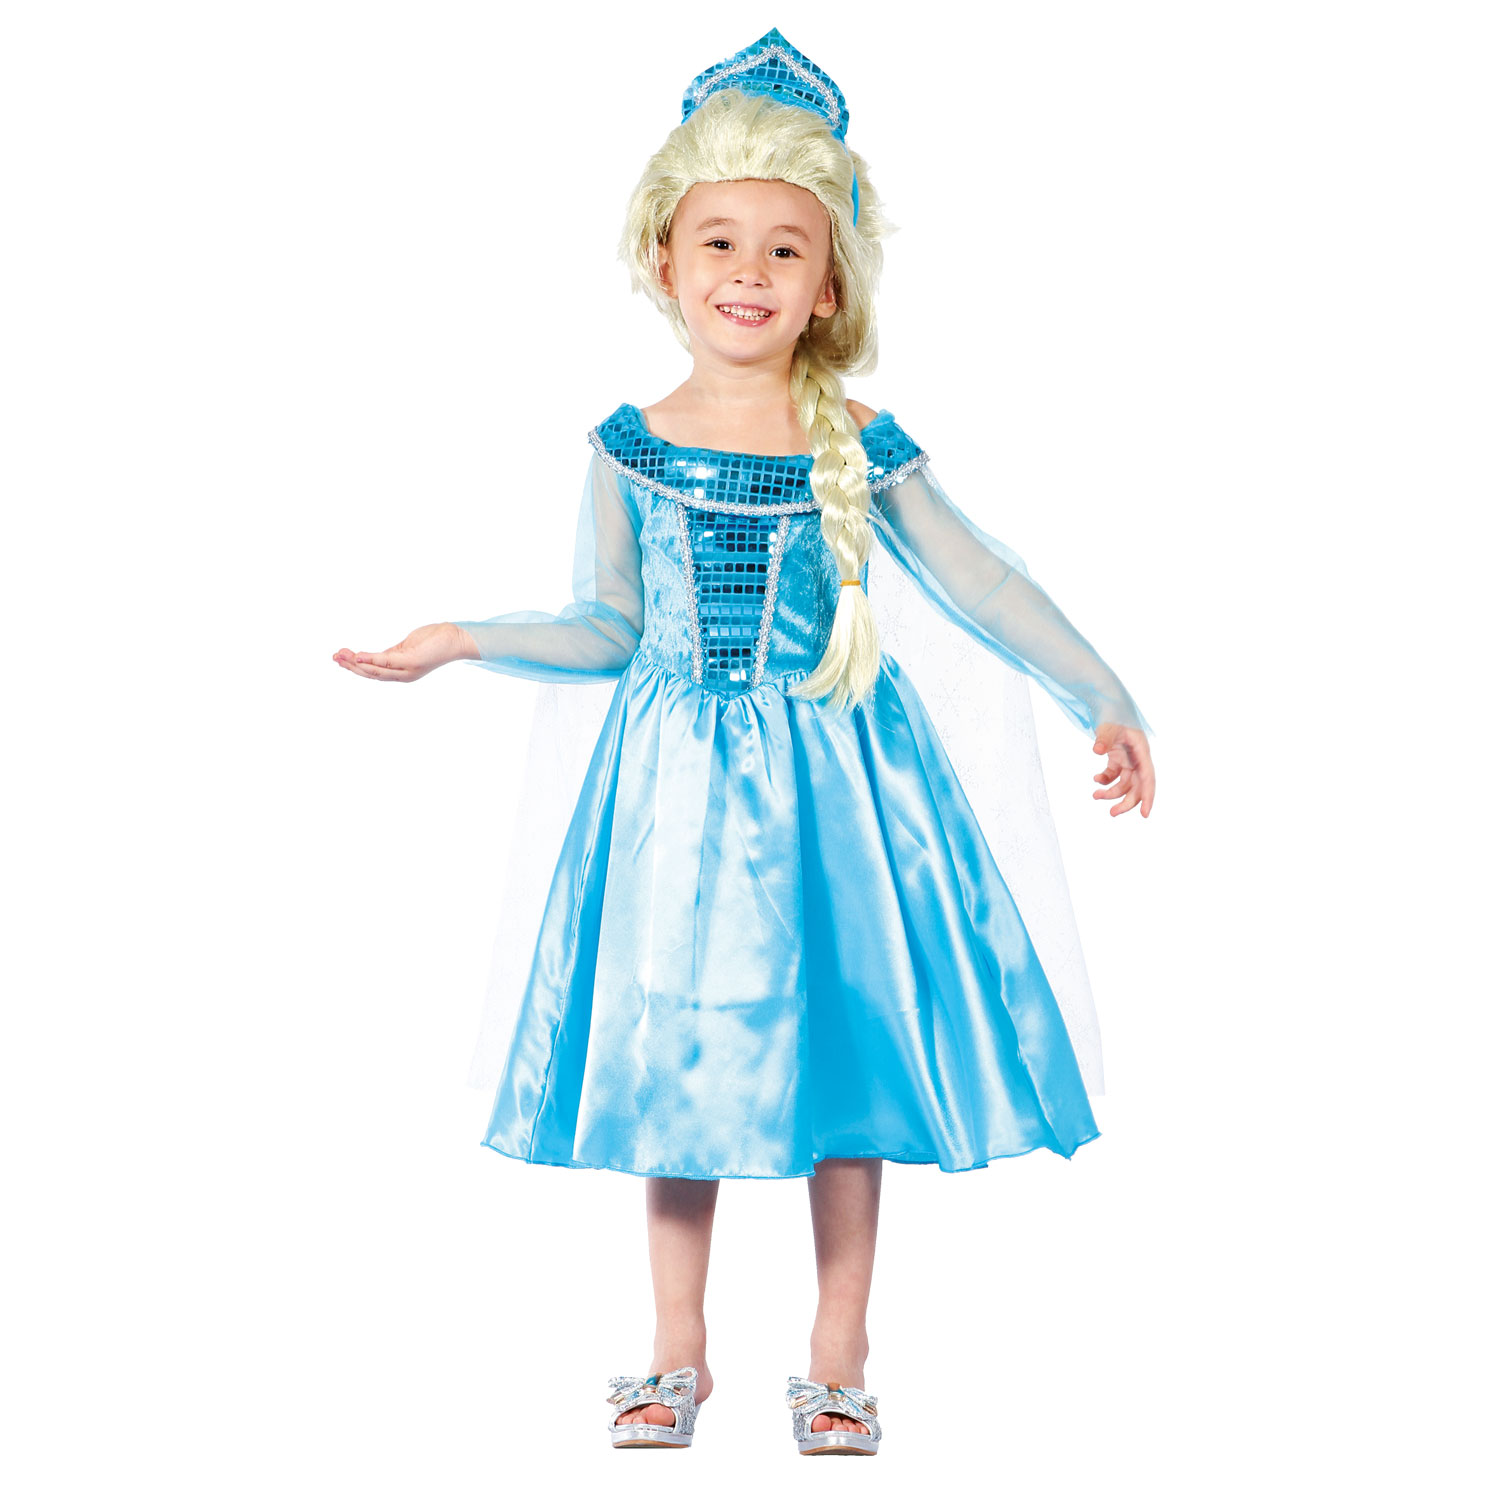 Kinderkostuum Winter Prinses, 3-4 jaar